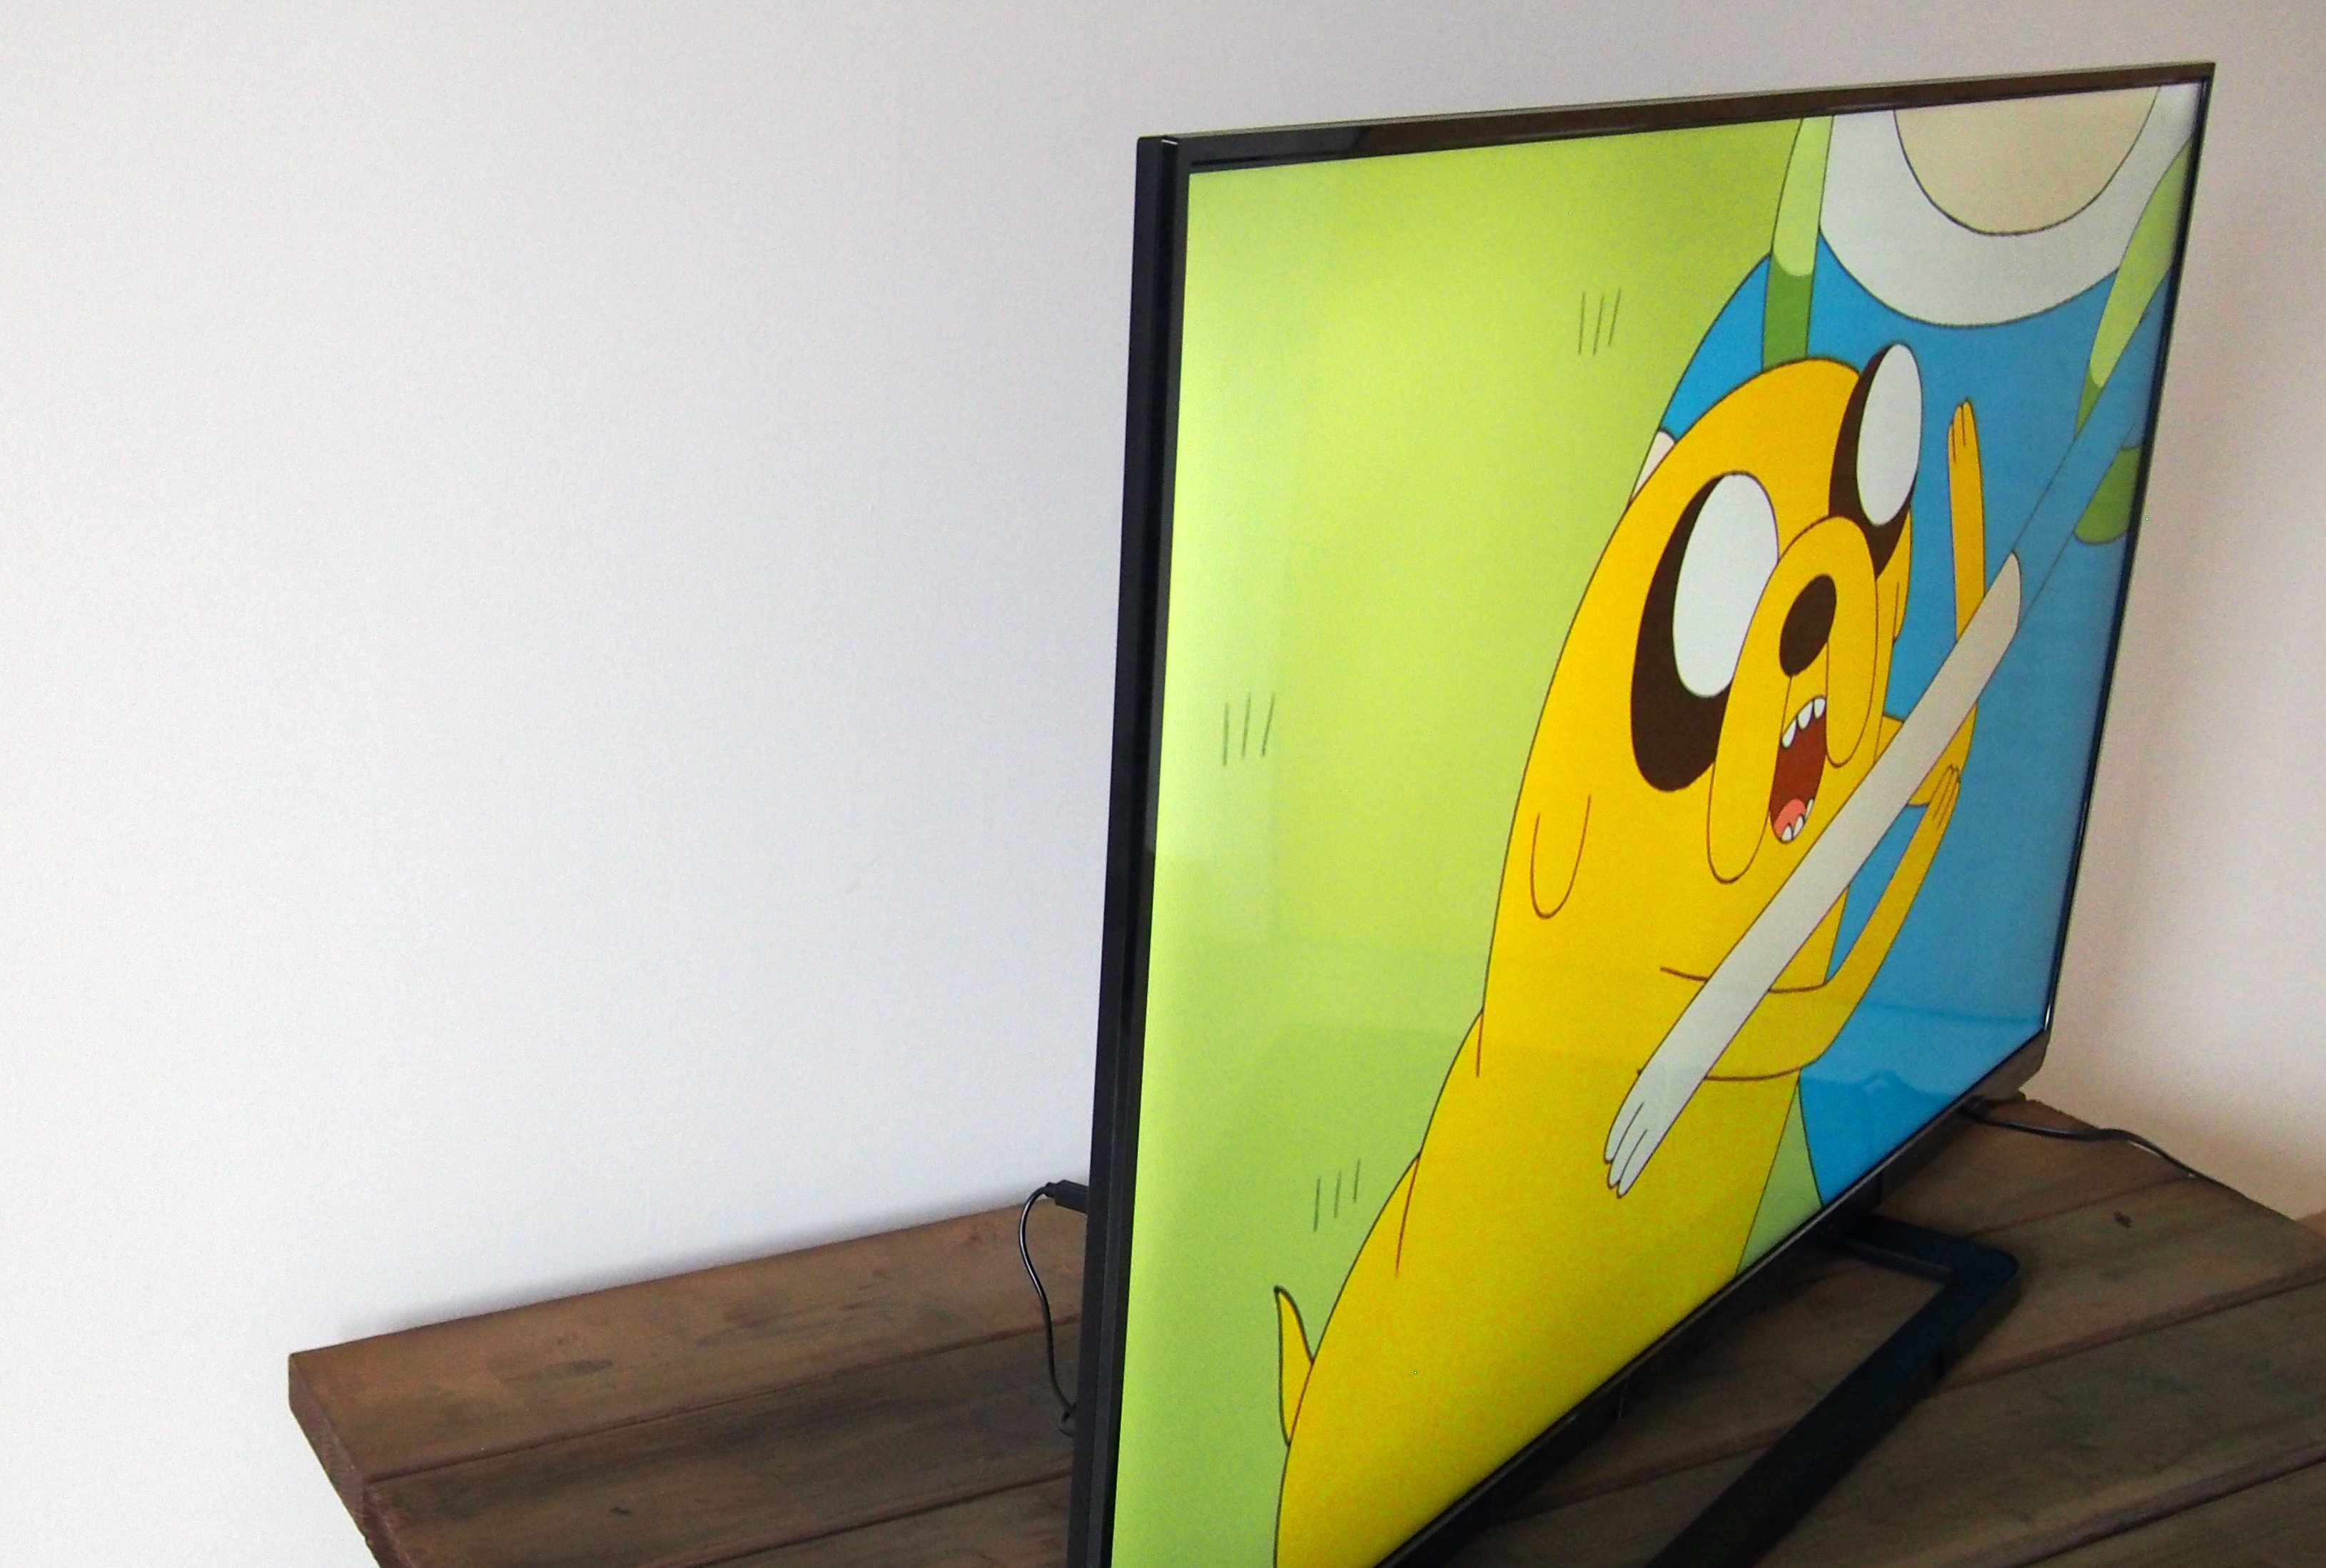 Price aside, the 50L1400U is an incredibly slim TV.